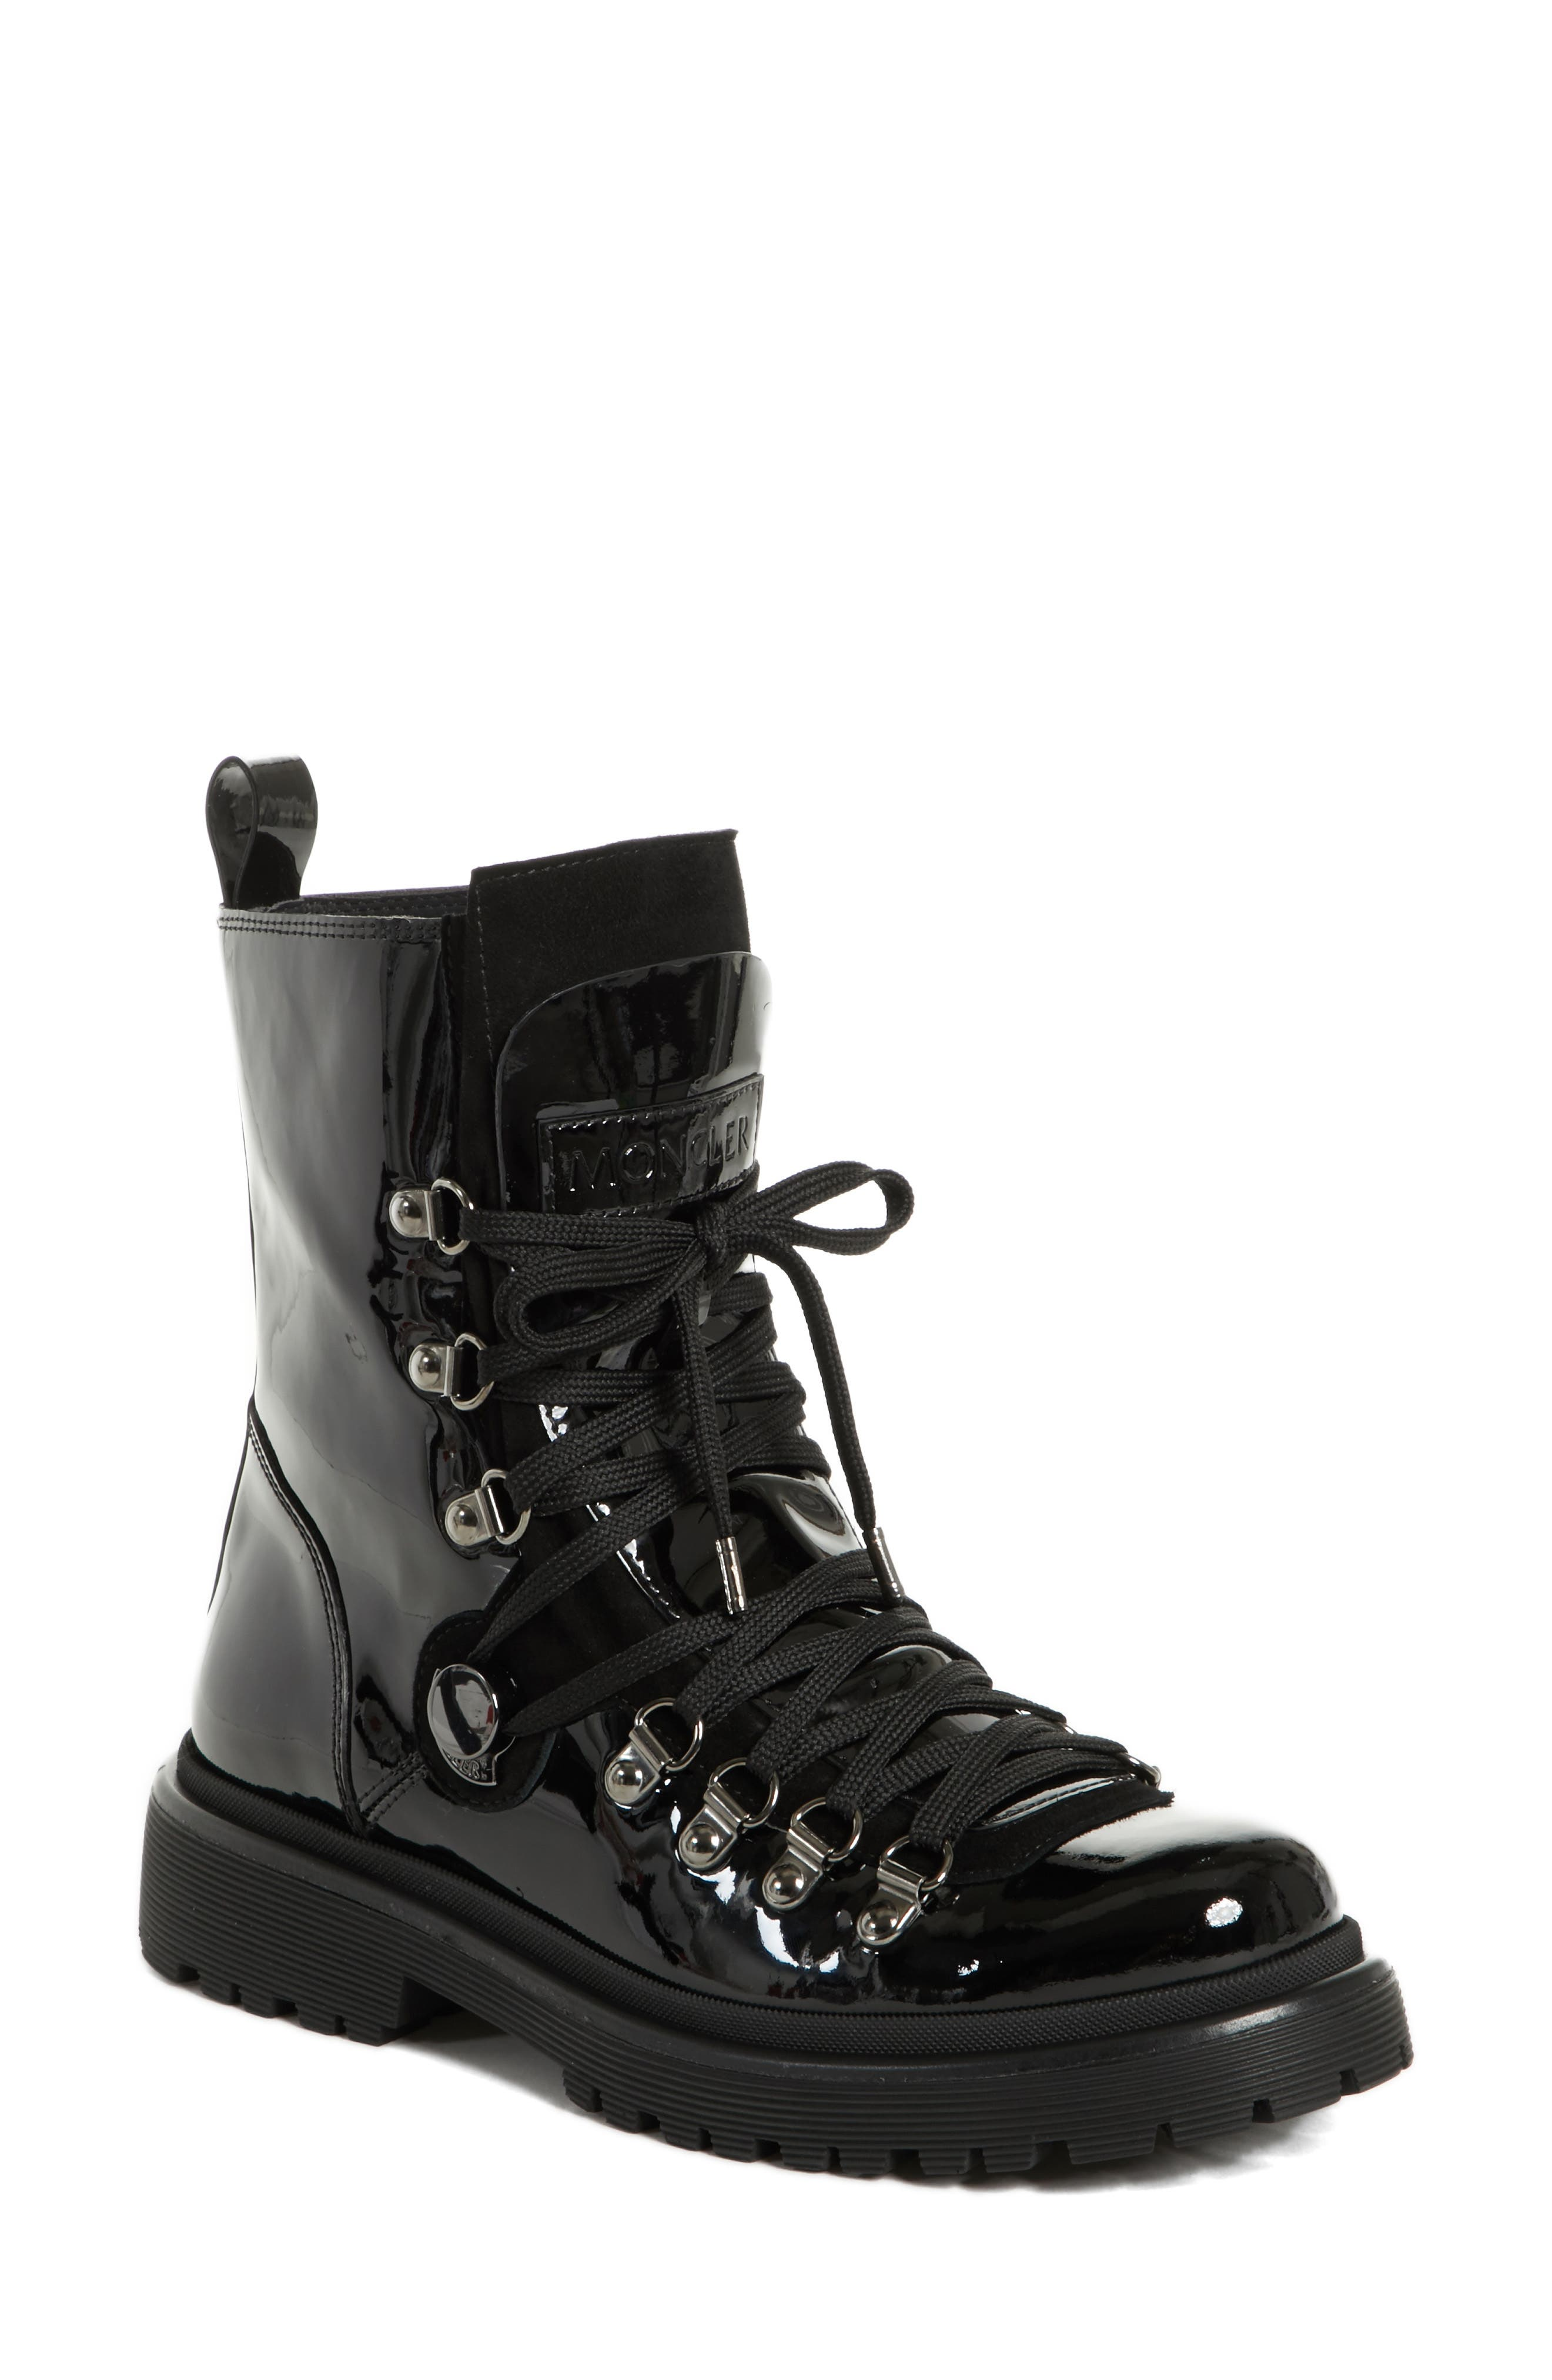 Women'S Berenice Patent Leather Hiker Boots in Black Patent